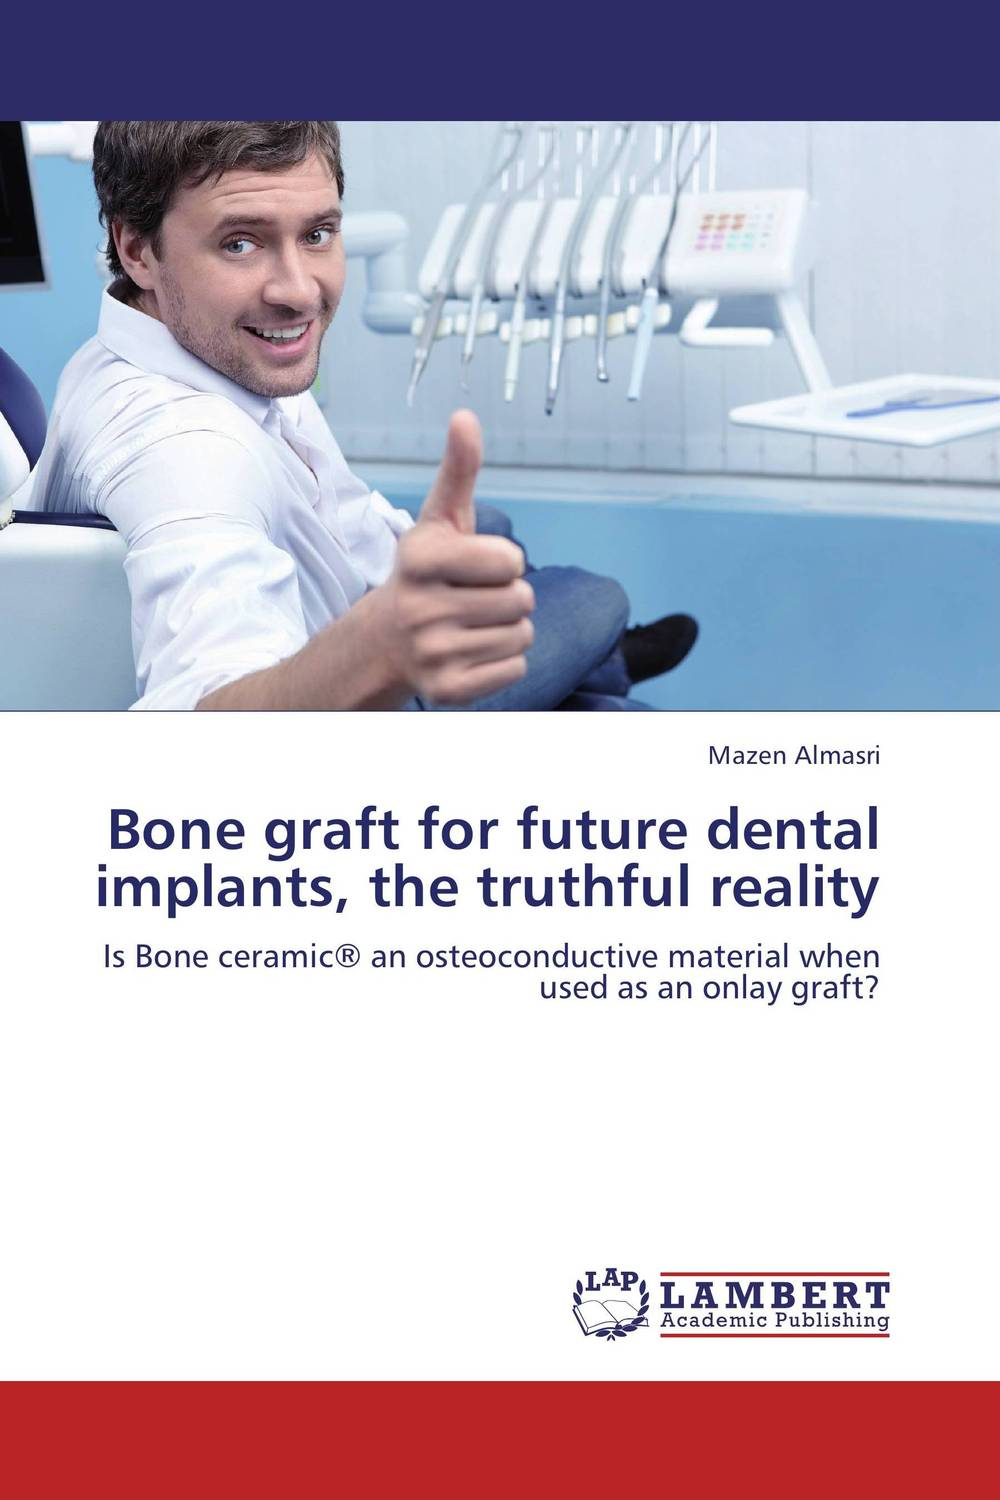 Bone graft for future dental implants, the truthful reality shaveta kaushal and atamjit singh pal dental implants and its design